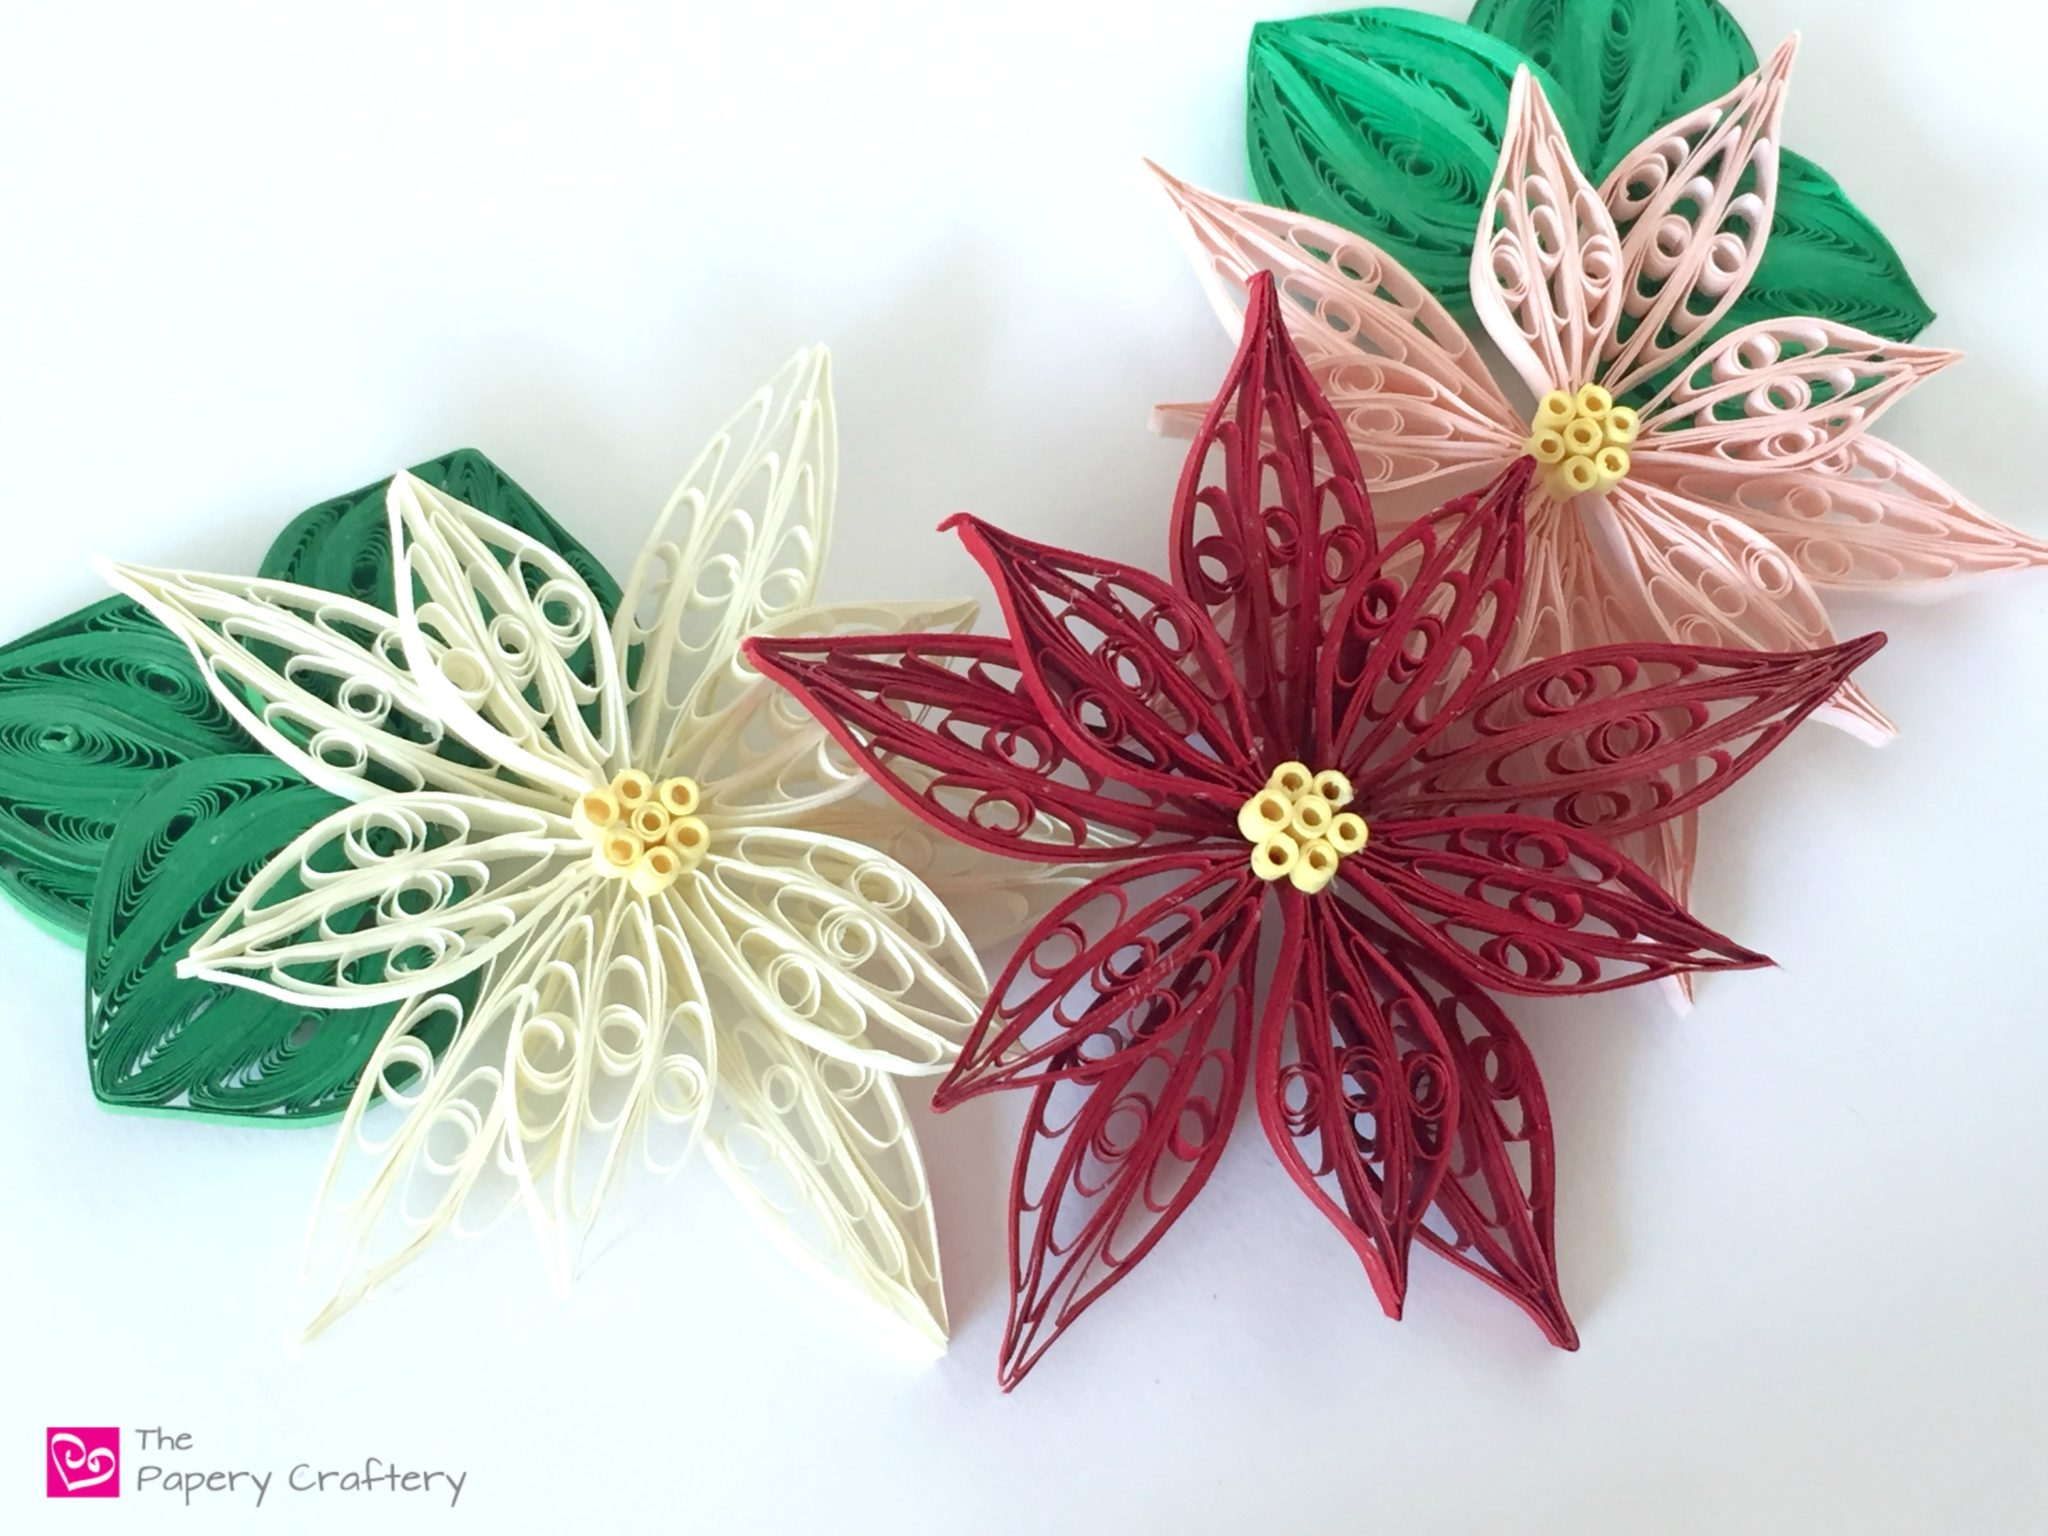 Preparing a Christmas souvenir for the holiday - decoration of the quilling technique